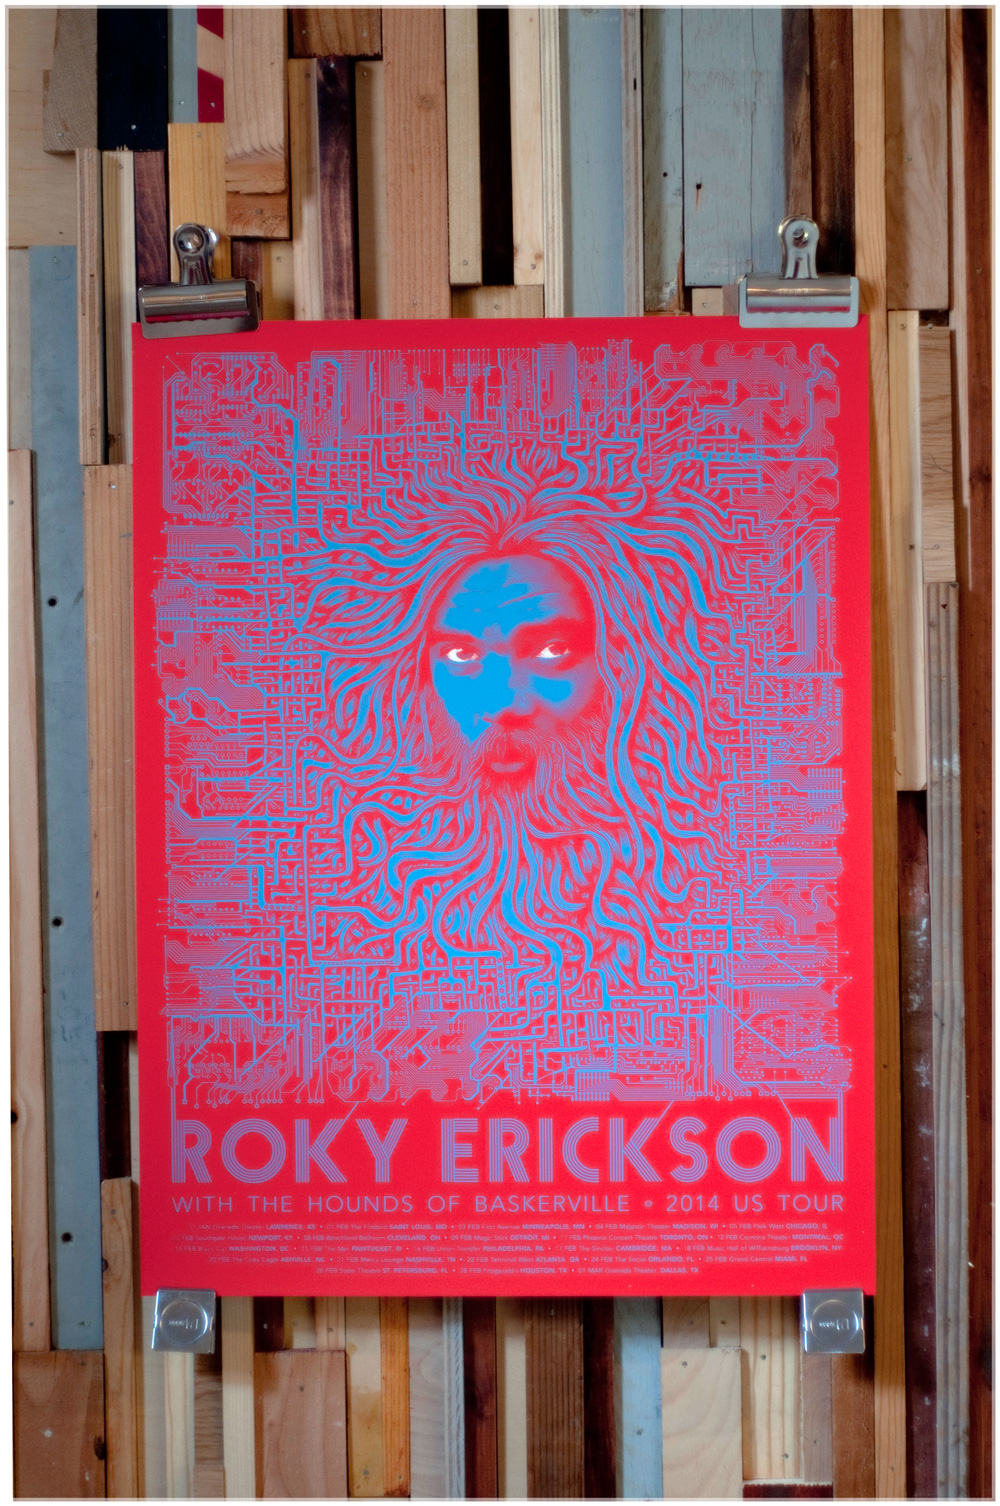 Roky Erickson, Mishka Westell, Screen Print, Bearded Lady, Bearded Lady Screen Prints, Screen Print Austin TX, Flatstock